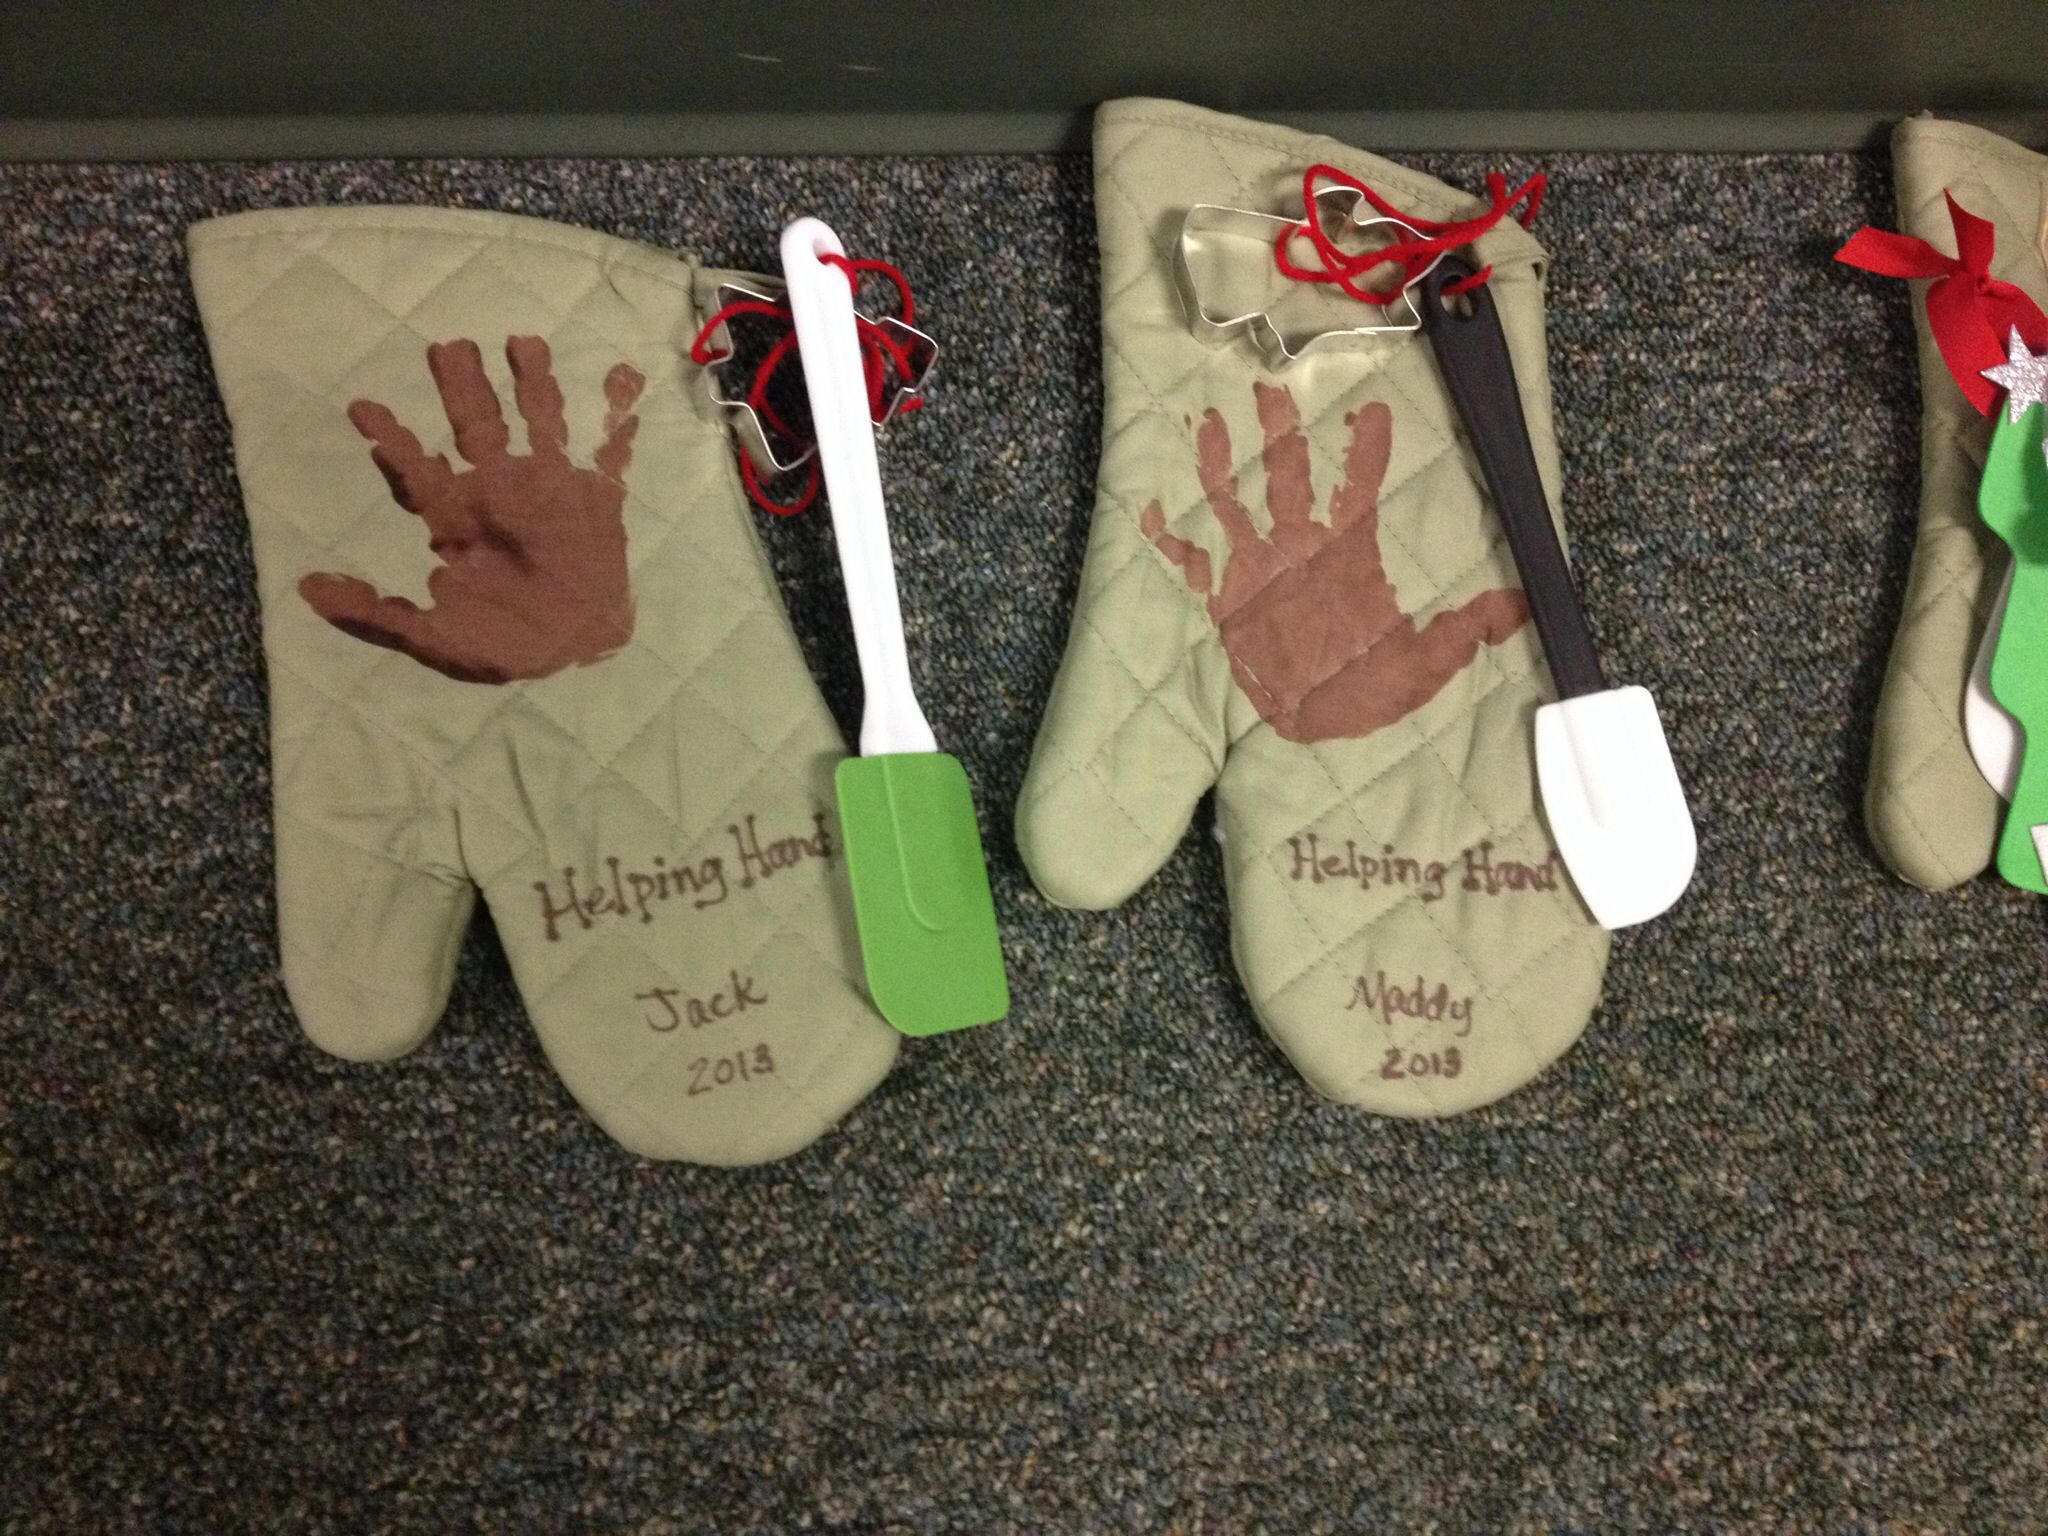 Helping Hand oven mitts as Christmas gifts for parents